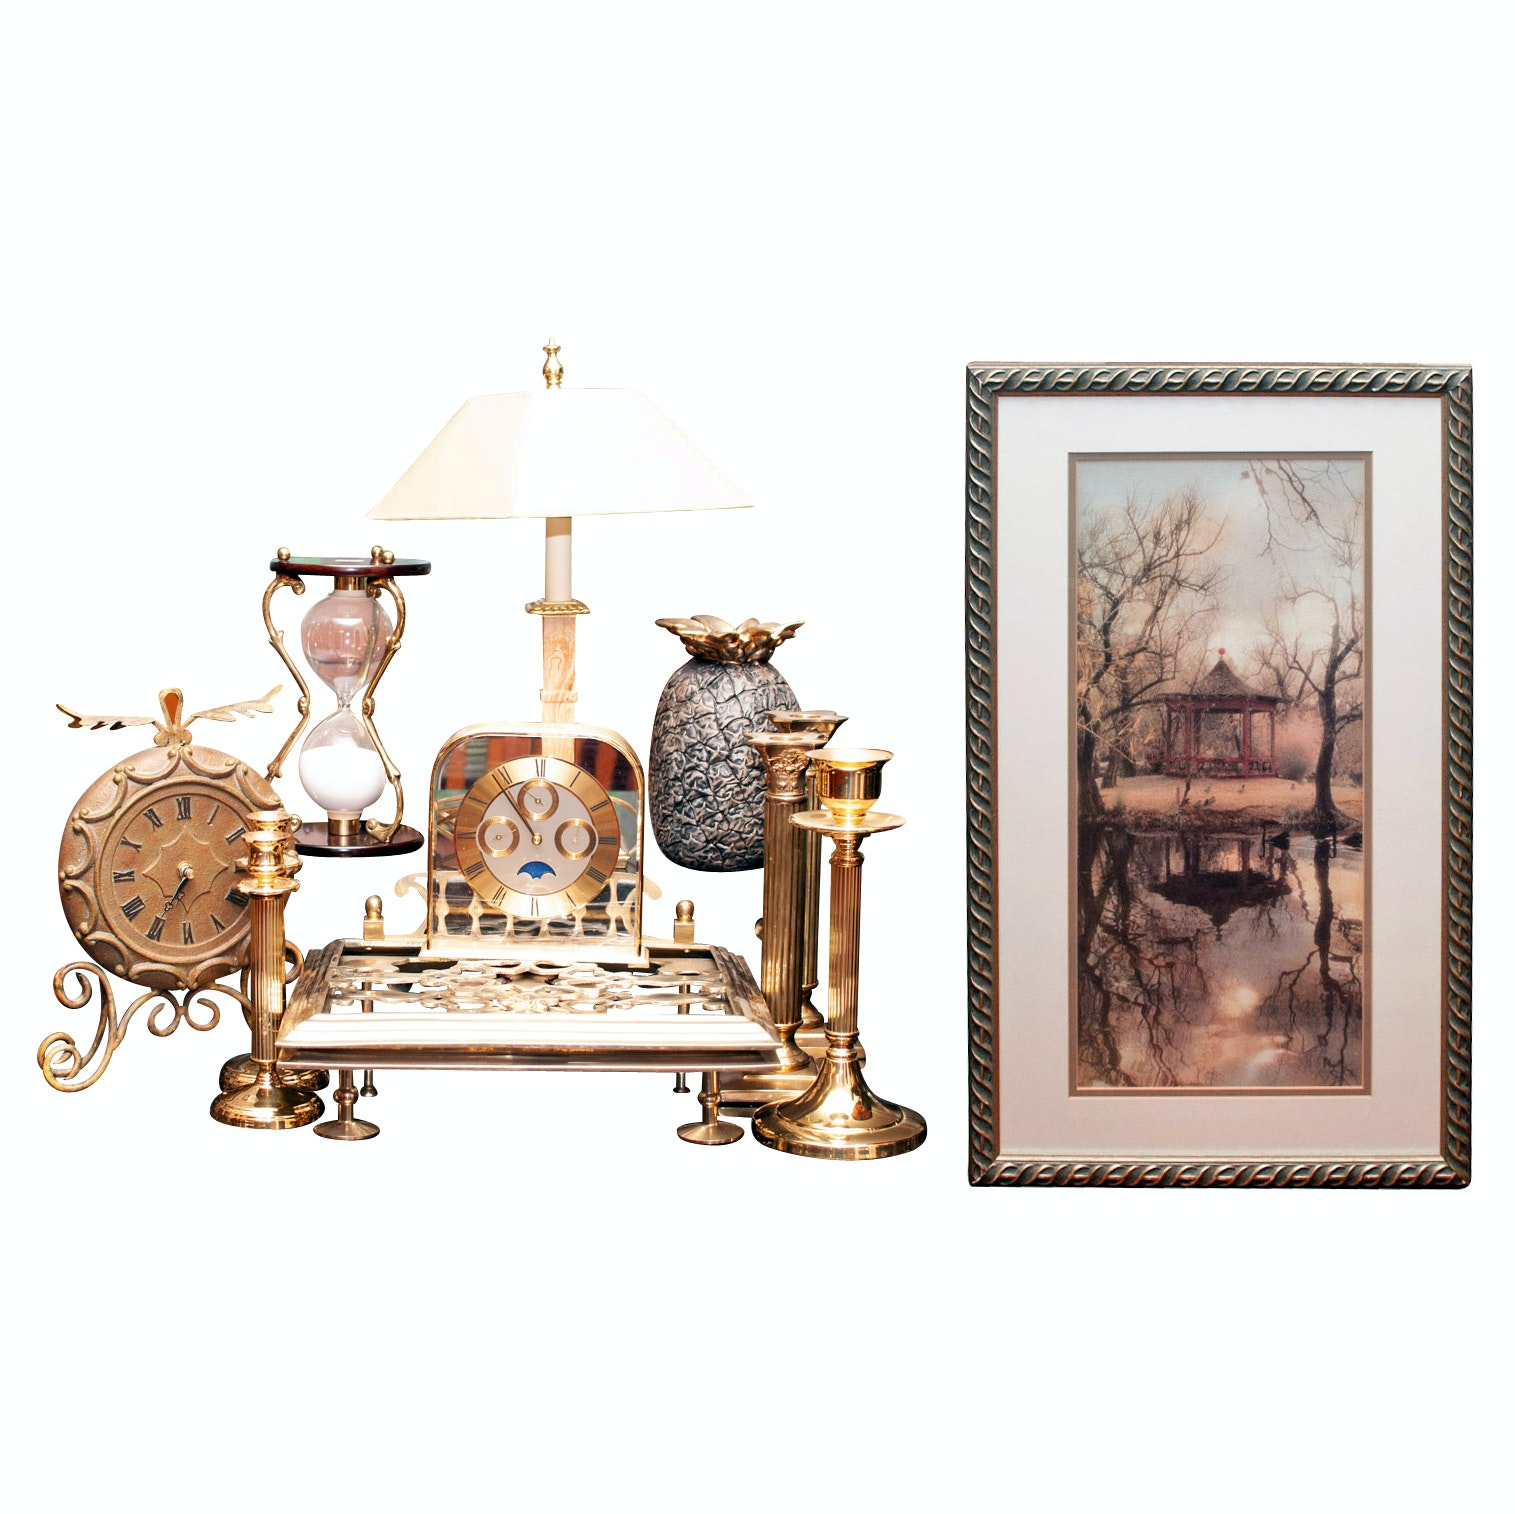 Home Decor including Desk Clock, Candlesticks and Lamp